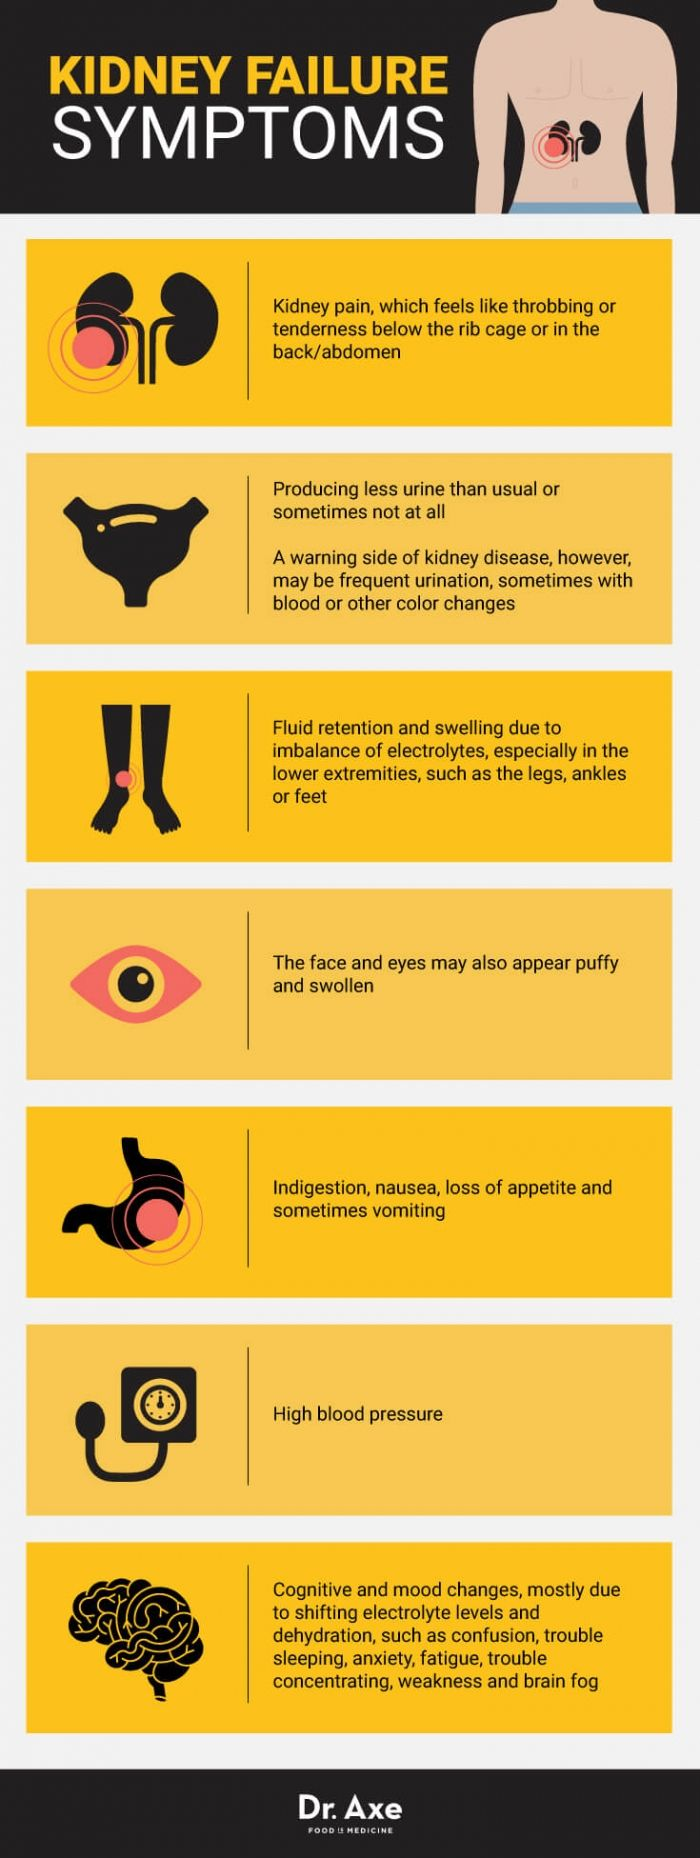 Kidney Failure Symptoms Treatments And Causes Infographics Kidney Failure Symptoms Kidney Health Kidney Failure